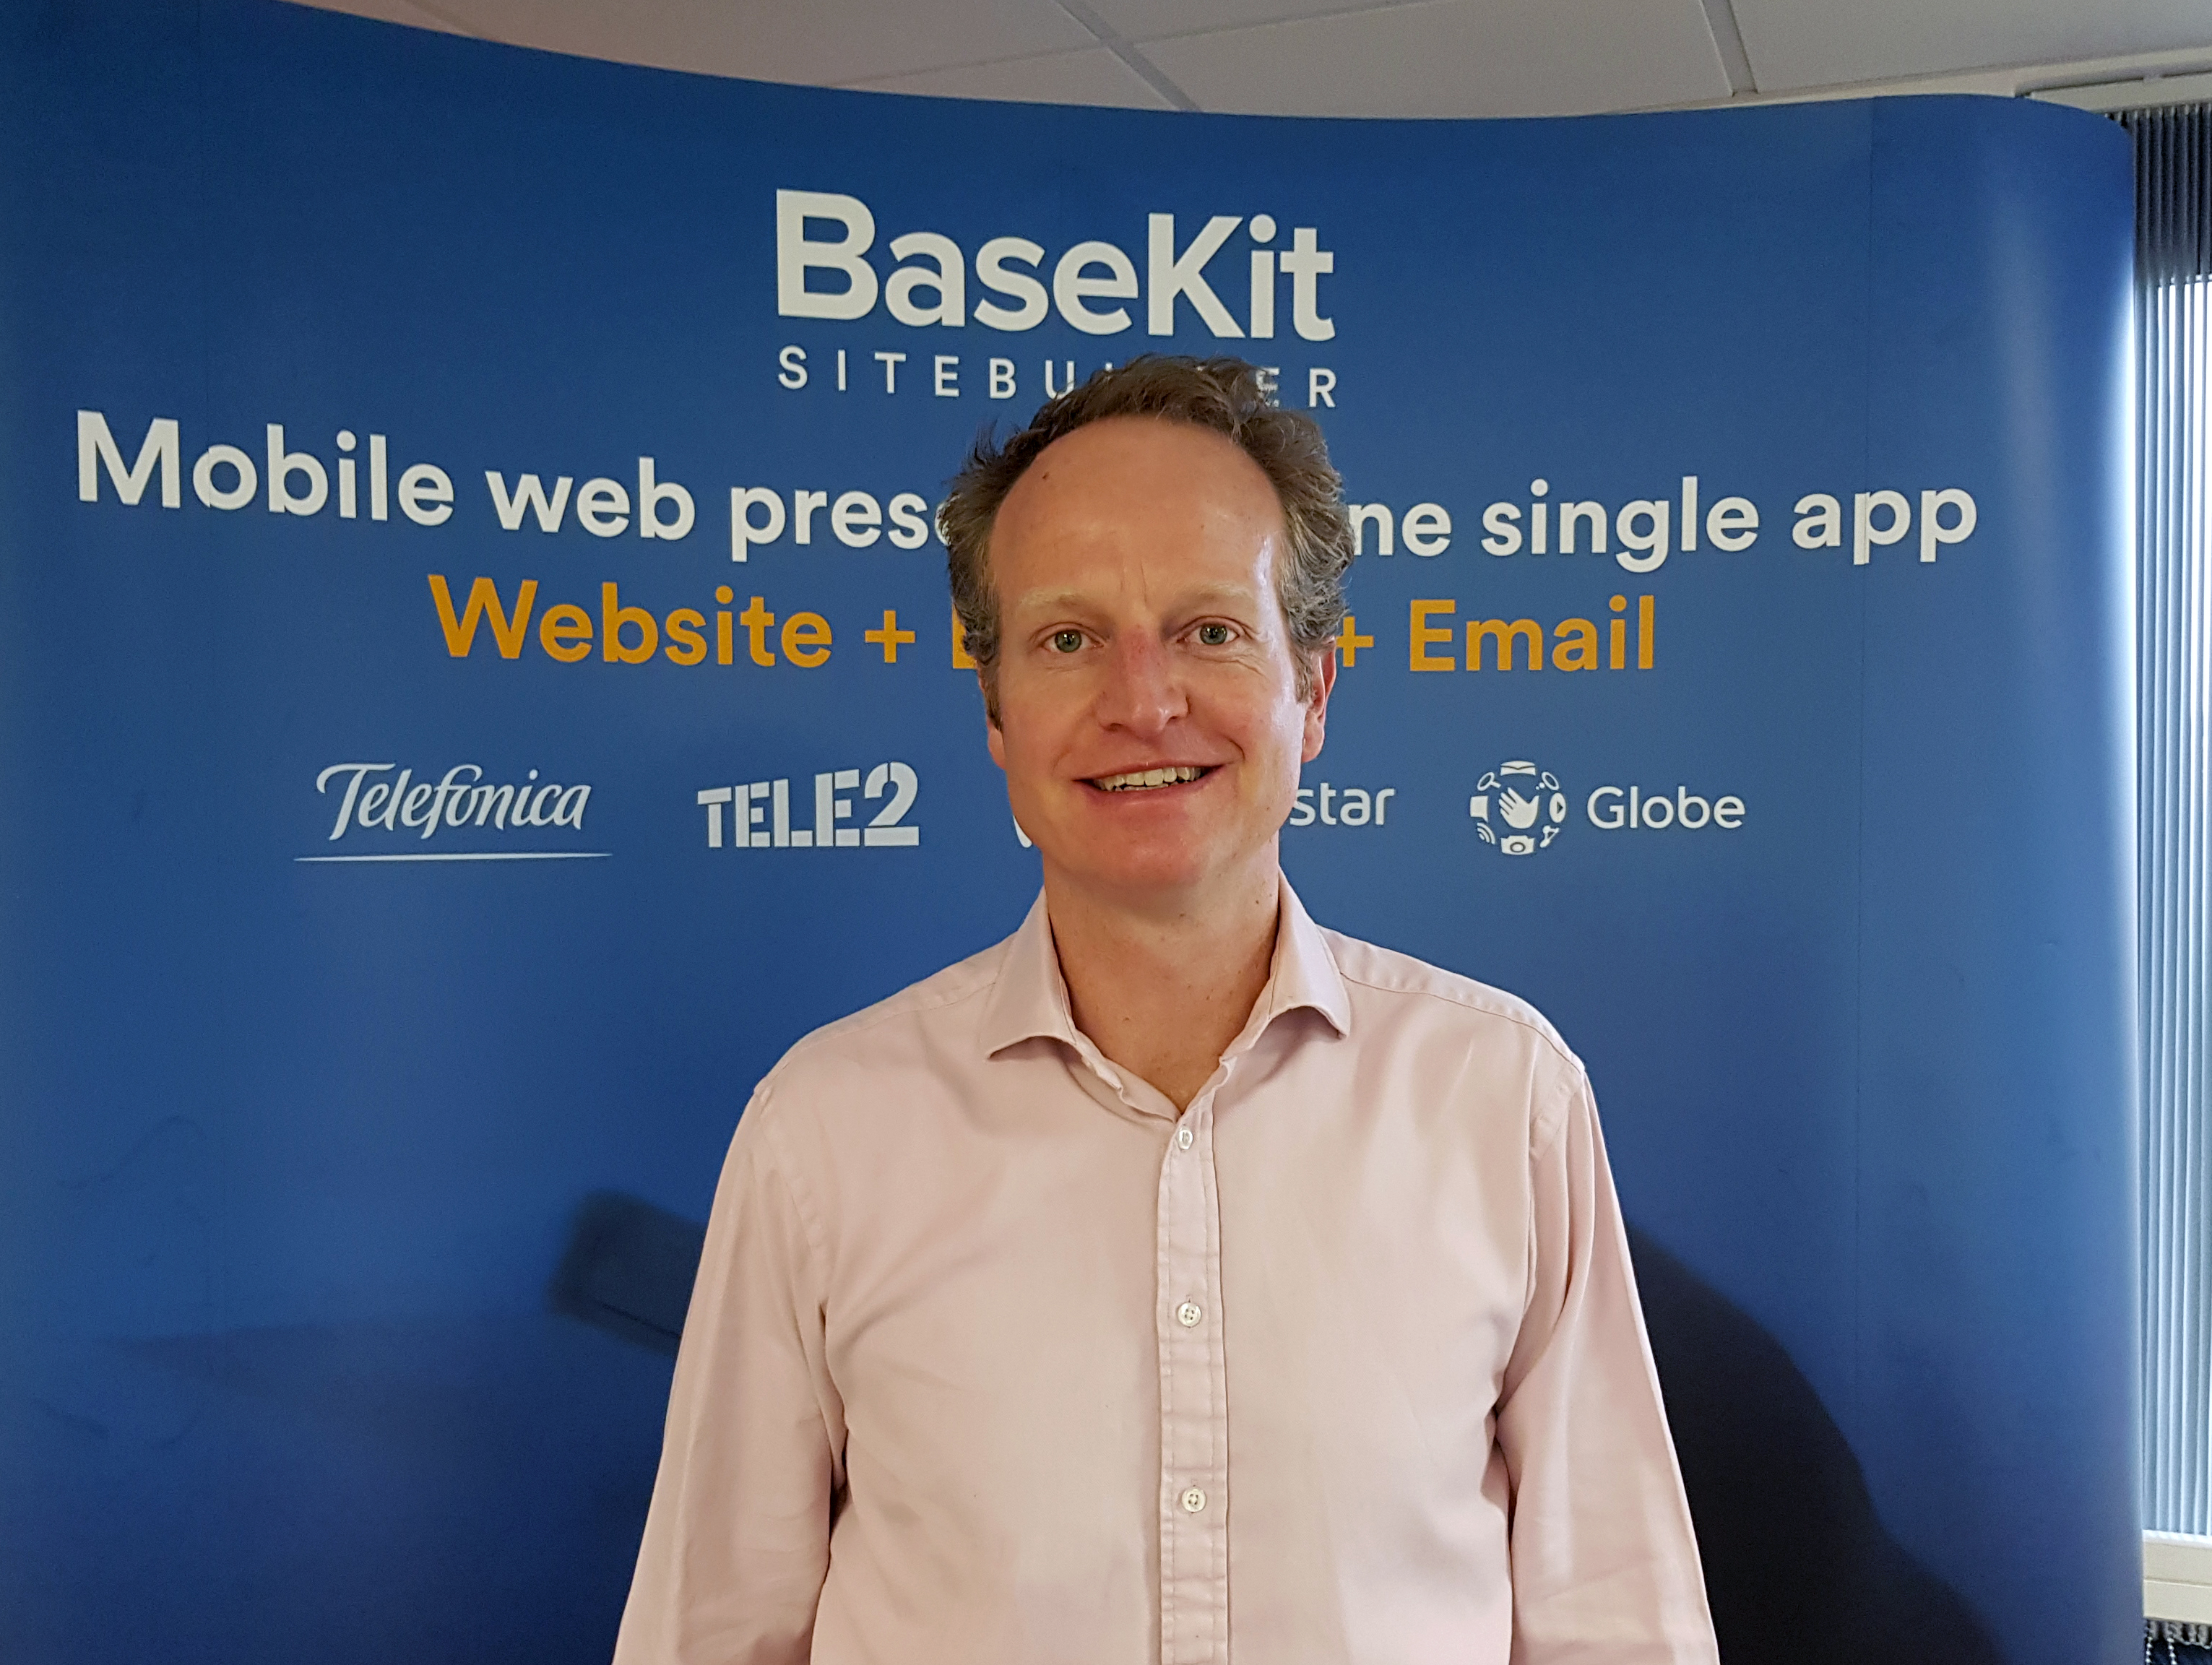 Q&A with Ben Threlfall, Chief Revenue Officer